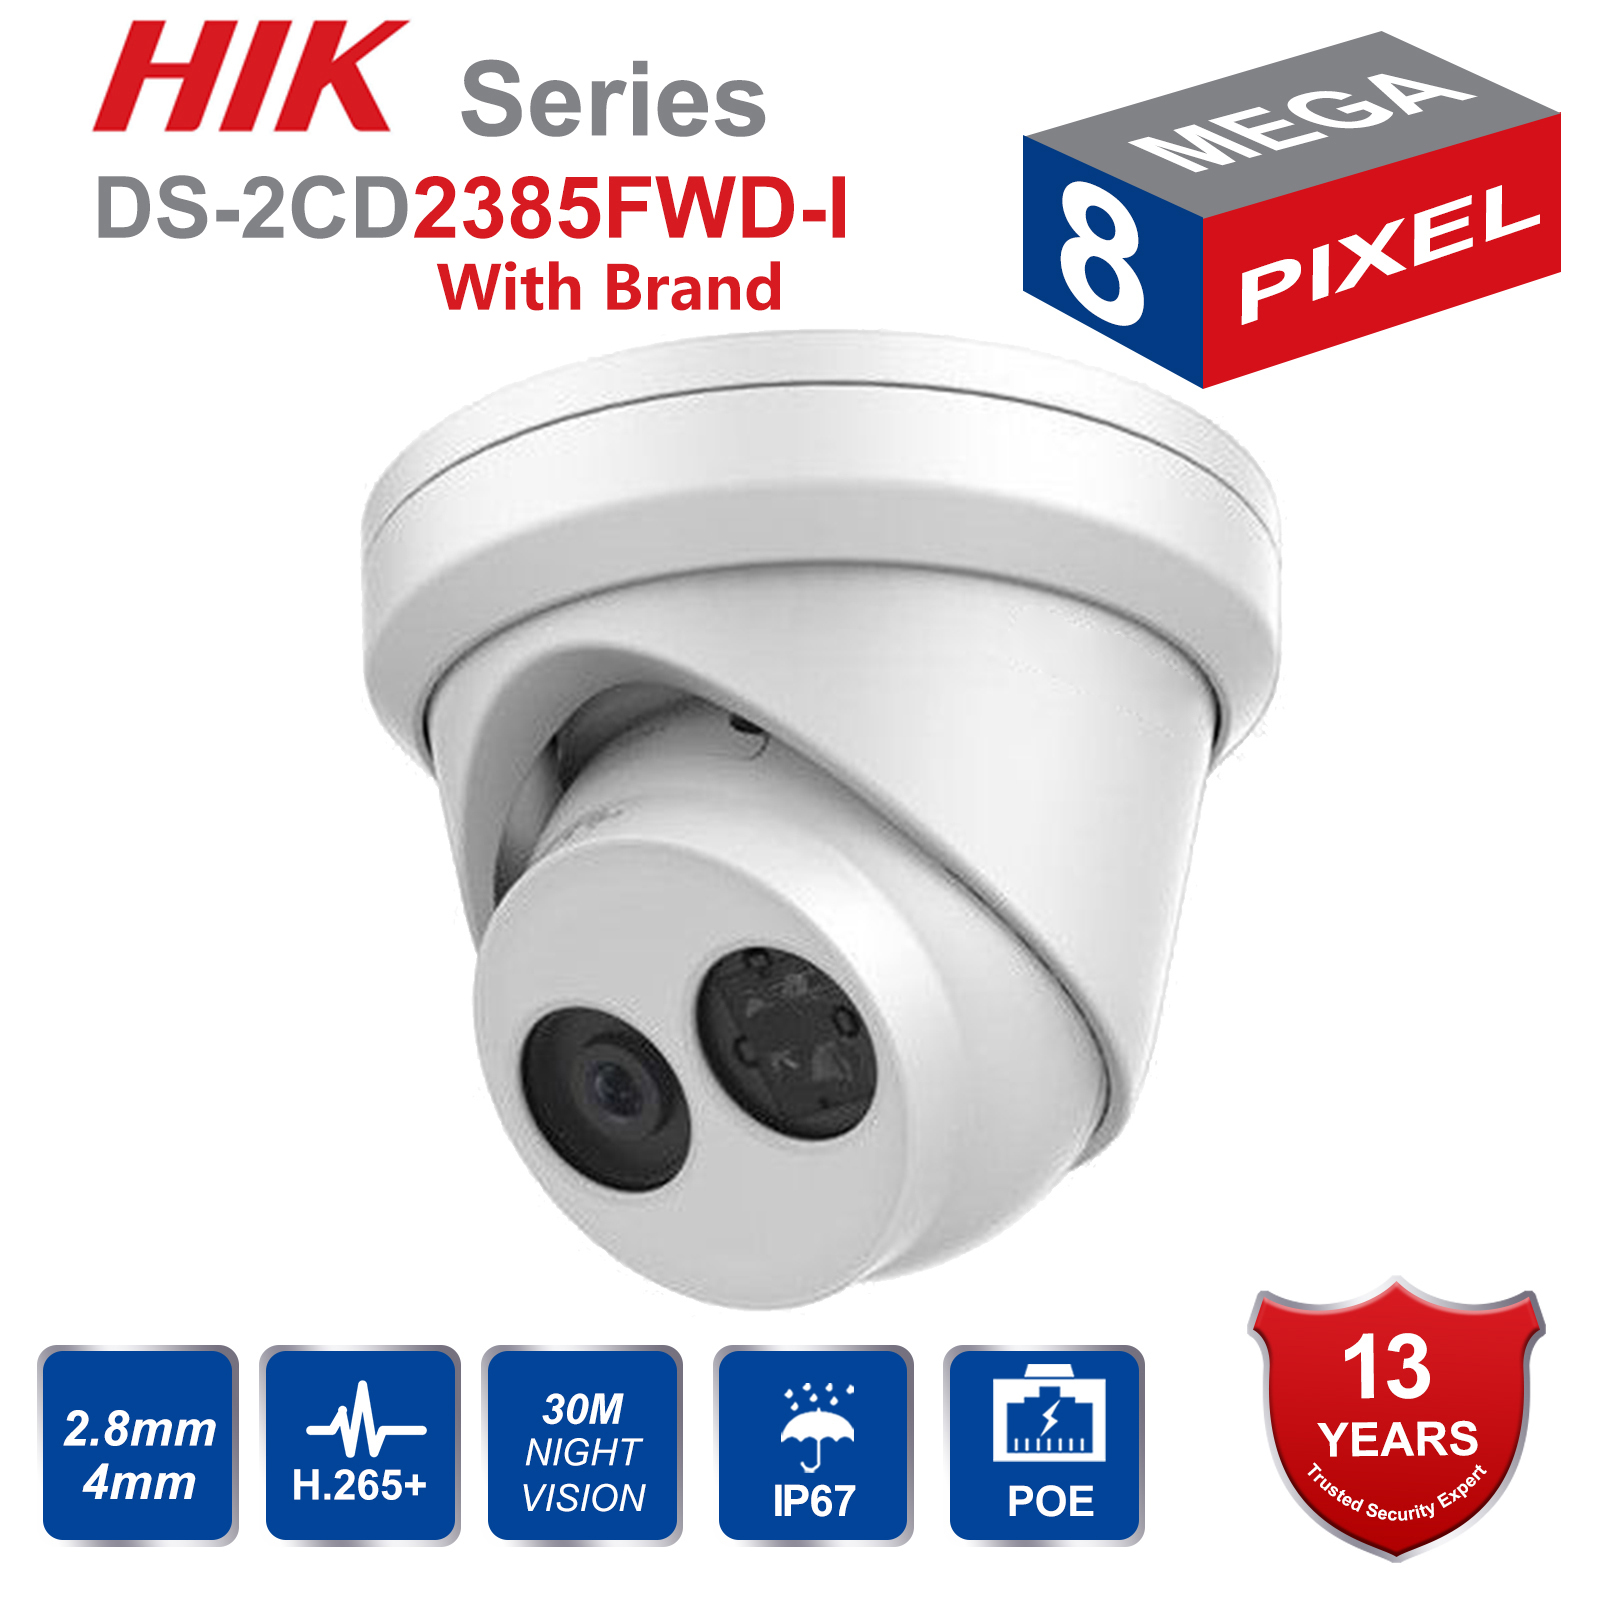 HIK English version DS-2CD2385FWD-I 8MP mini network turret CCTV security camera POE 30M IR H 265 dome ip cameraHIK English version DS-2CD2385FWD-I 8MP mini network turret CCTV security camera POE 30M IR H 265 dome ip camera